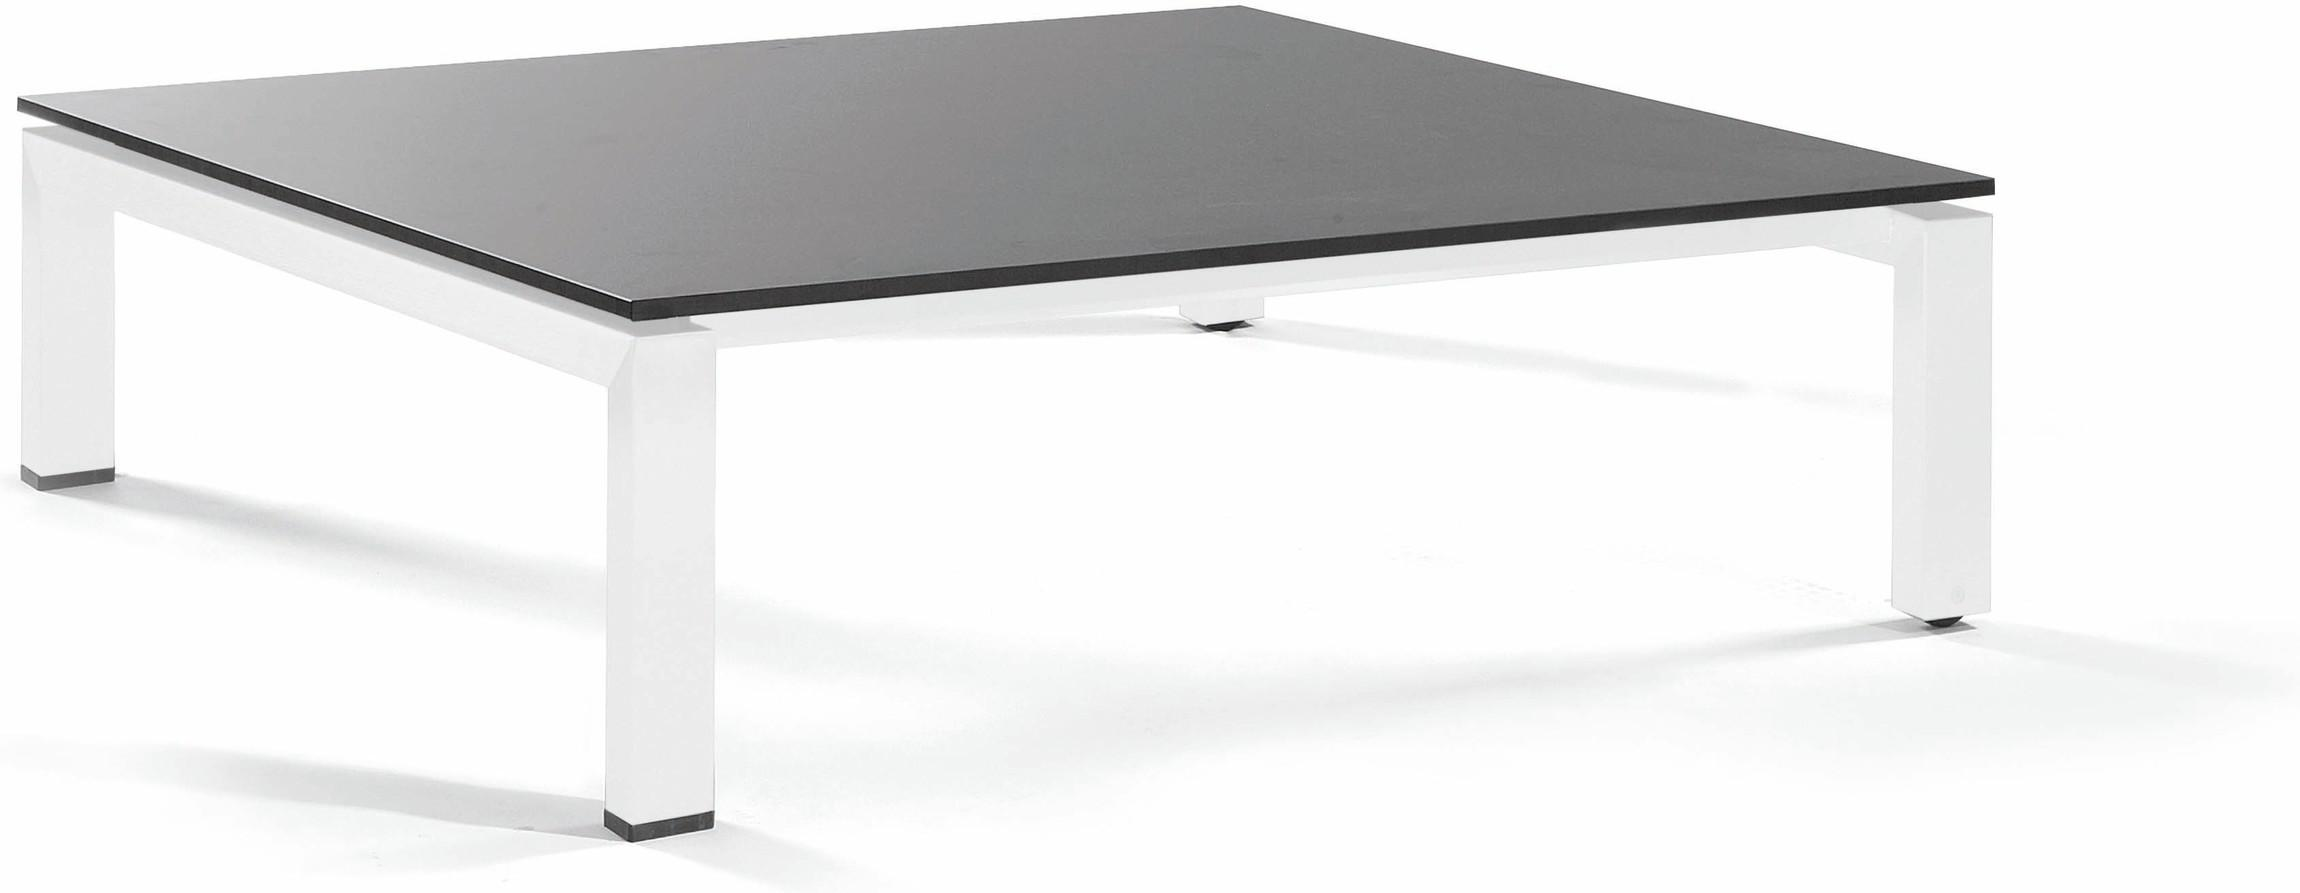 Trento Coffee table - ceramic basalt black 6mm EK 105